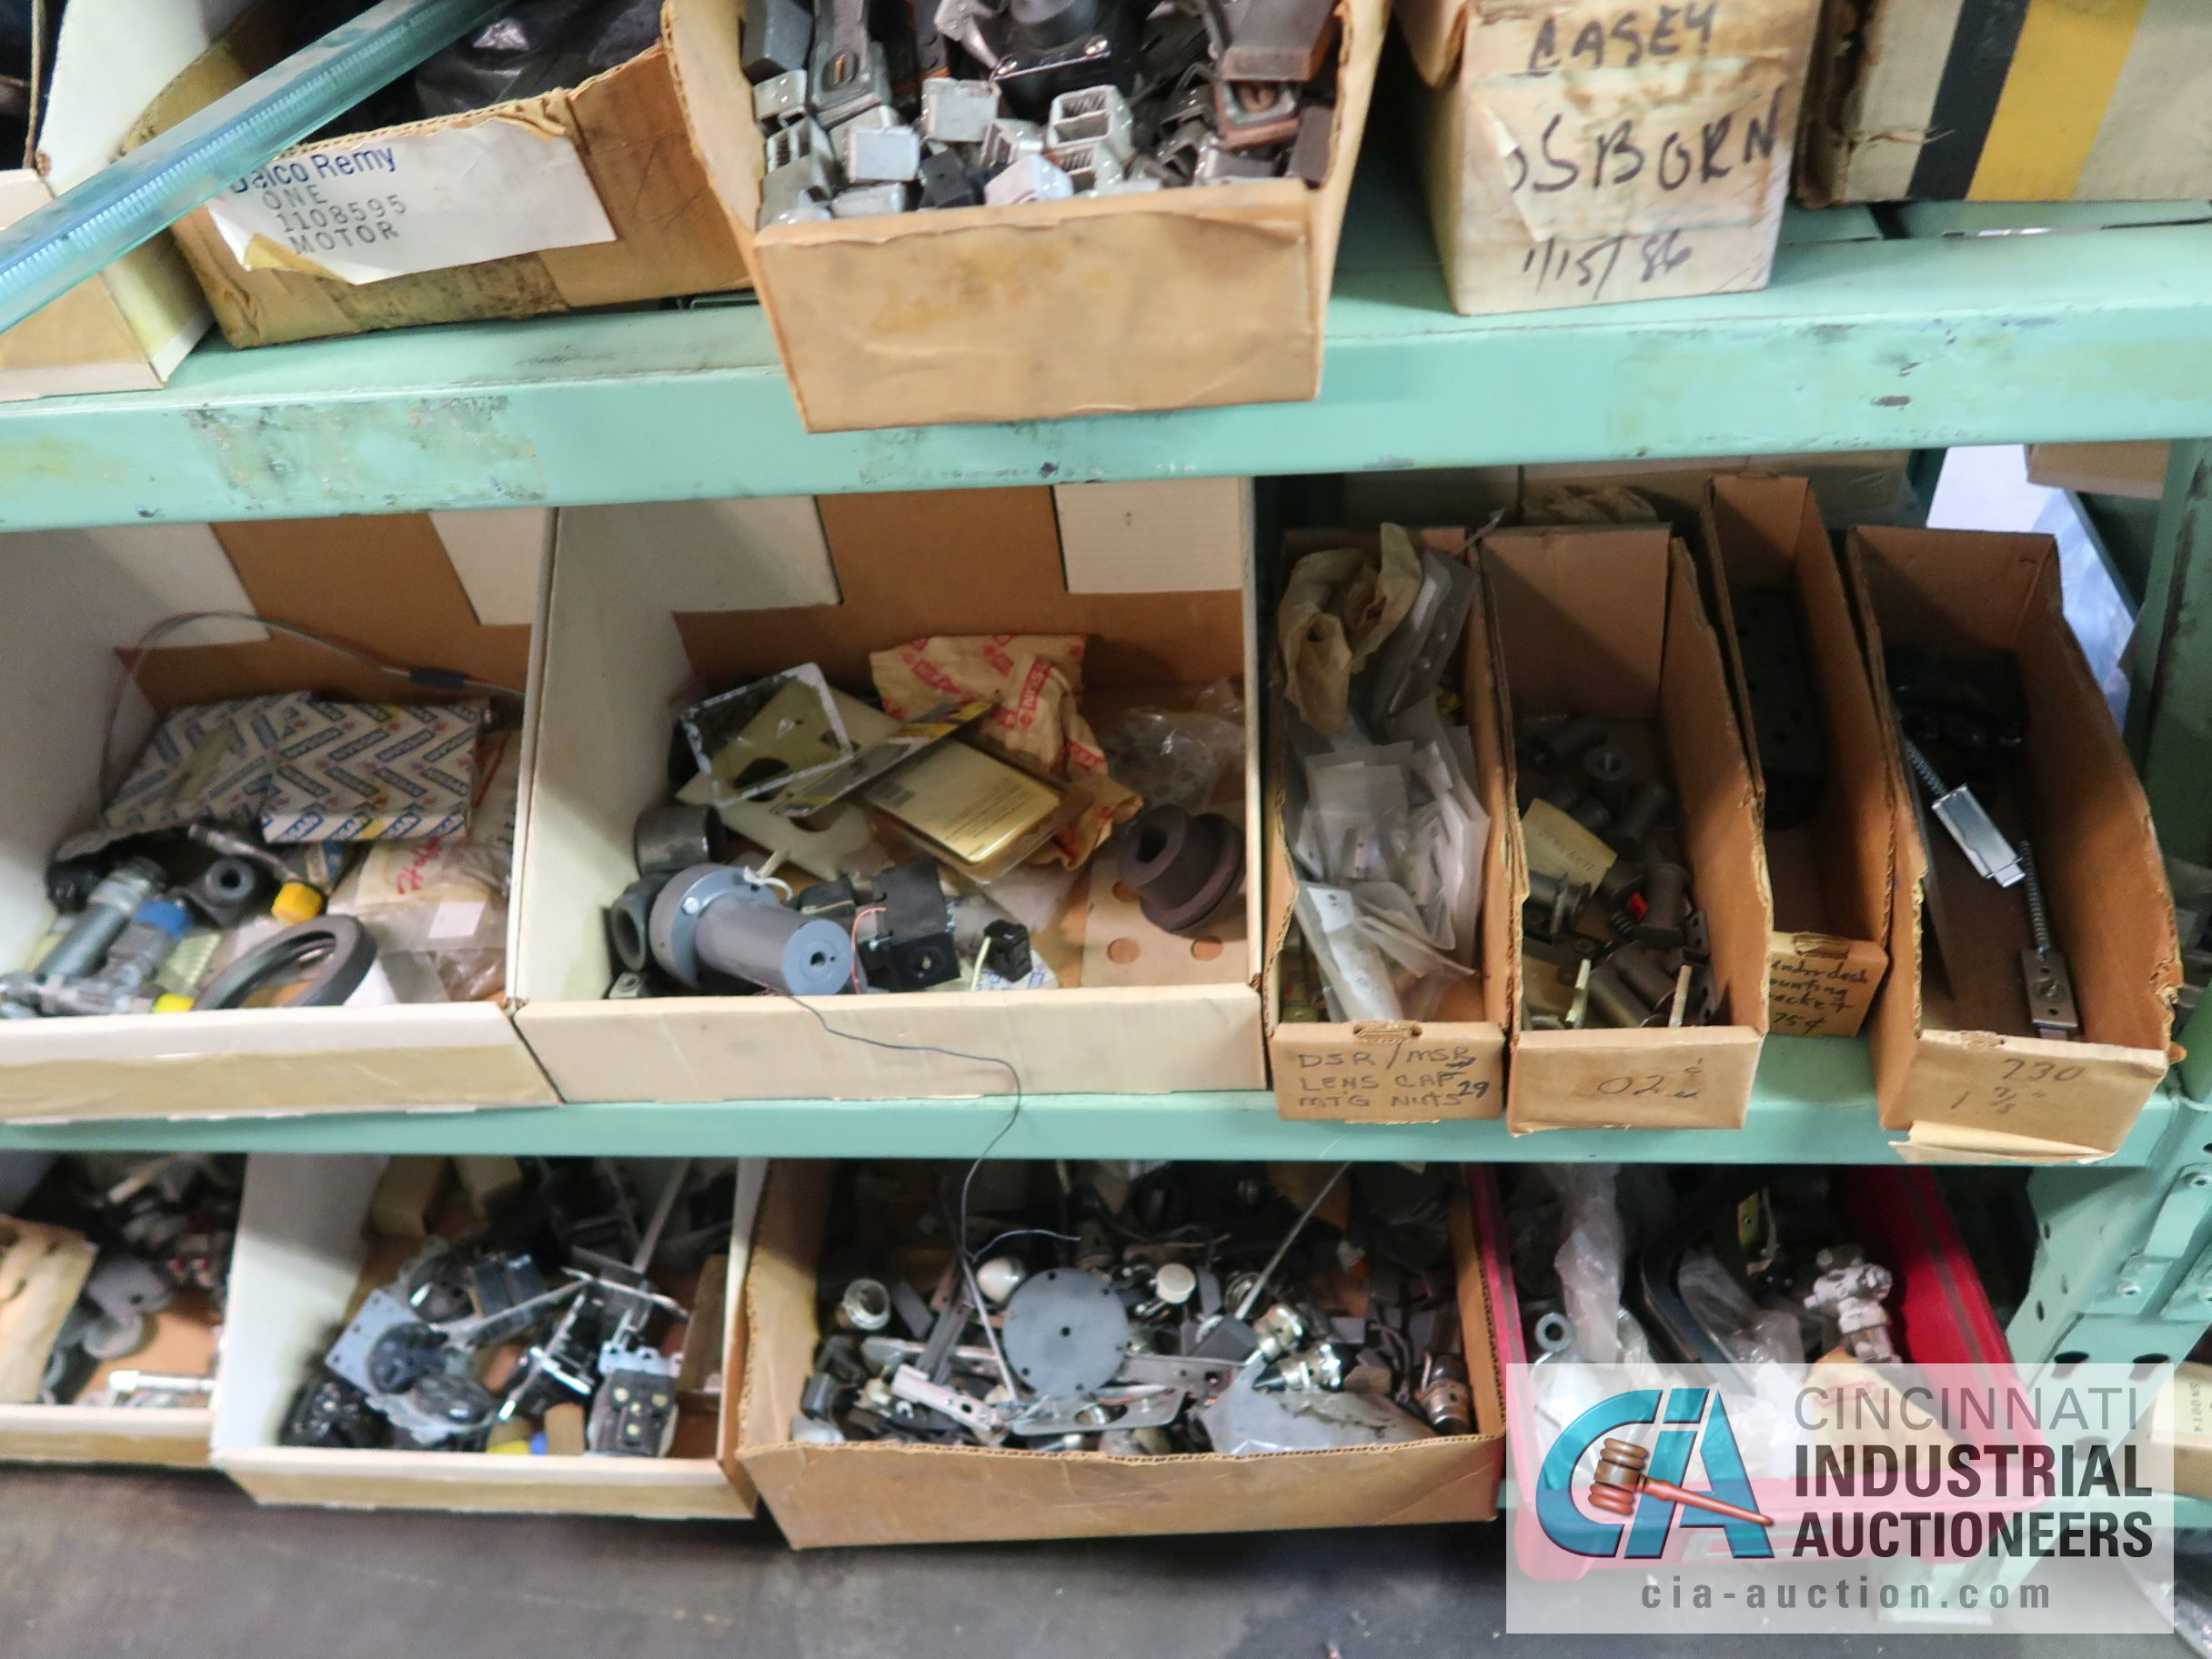 CONTENTS OF (6) RACKS INCLUDING MISCELLANEOUS AUTOMOTIVE PARTS, BREAKS, ROTORS, GASKETS, MOUNTING - Image 27 of 38